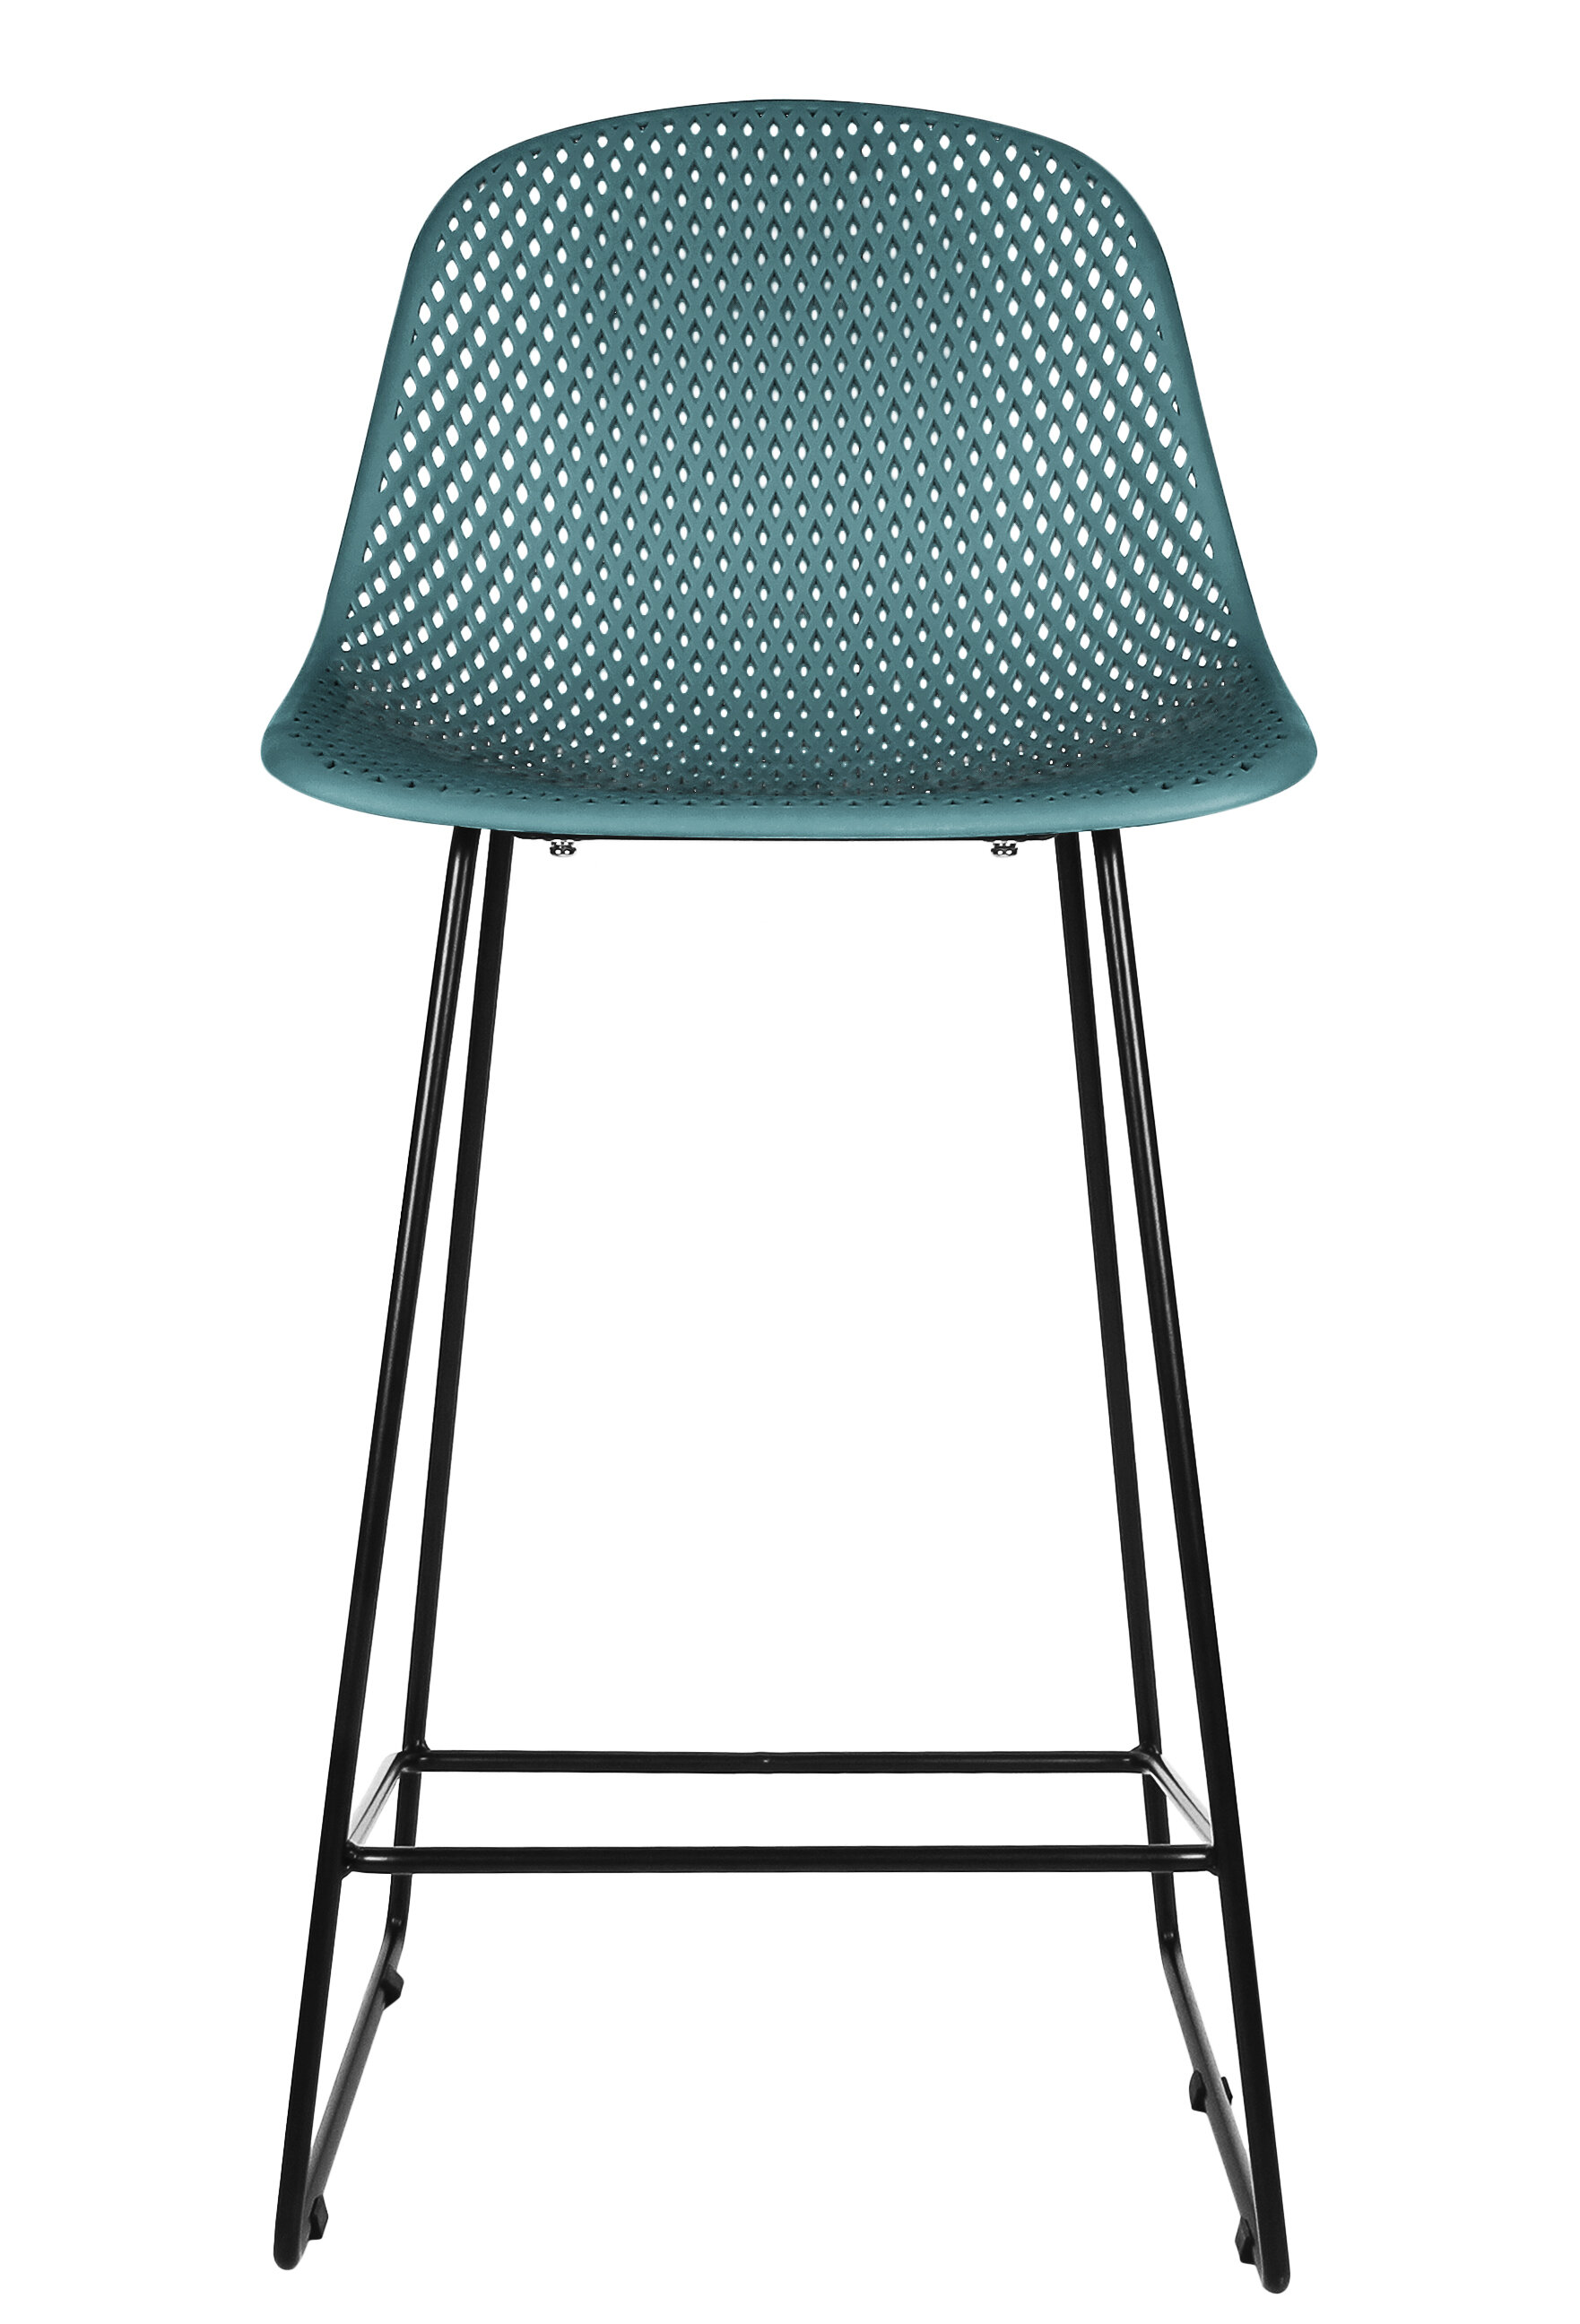 Conscientious Industrial Chic Metal Round Seat Adjustable Height Bar Stool With Curve Backrest Bar Chairs